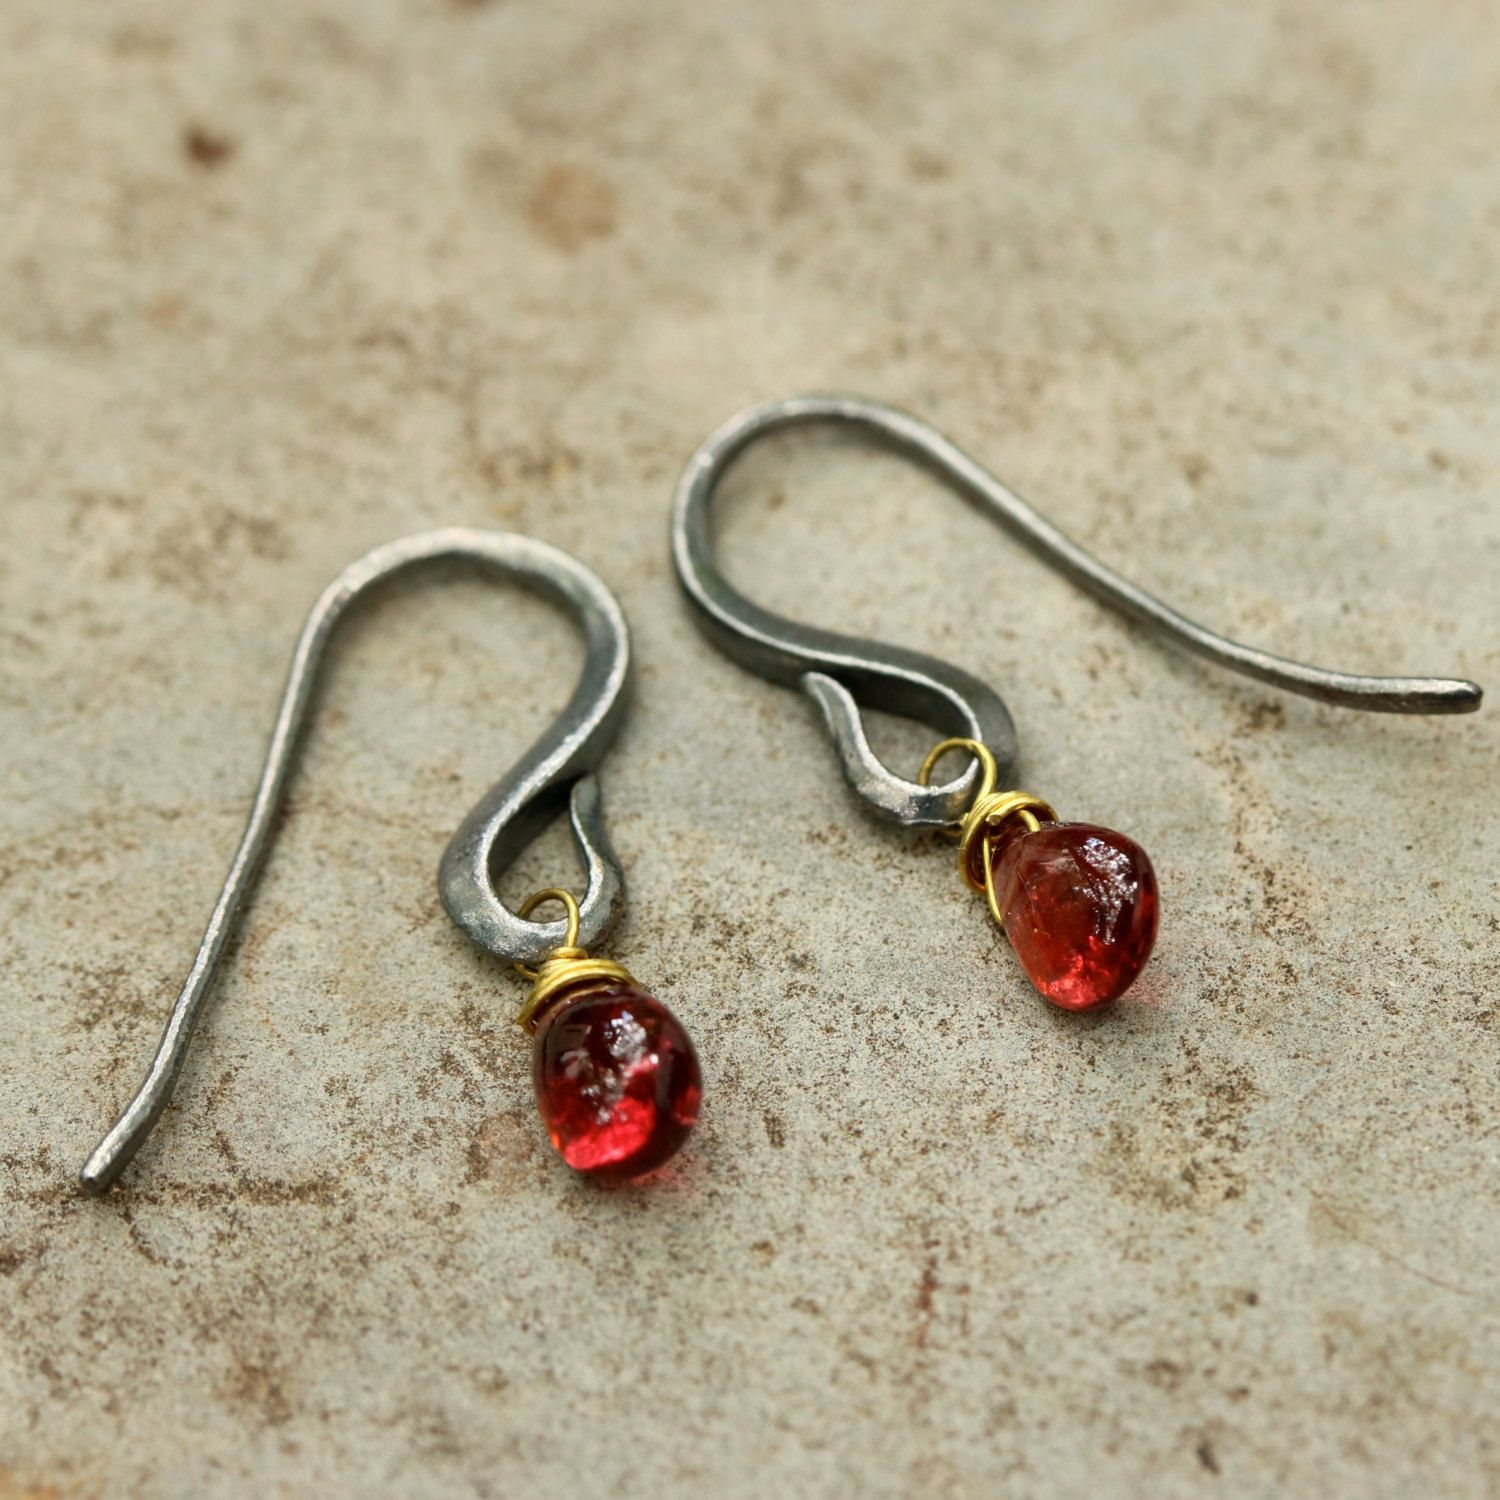 Tiny garnet drops cabochon earrings with oxidized sterling silver hooks